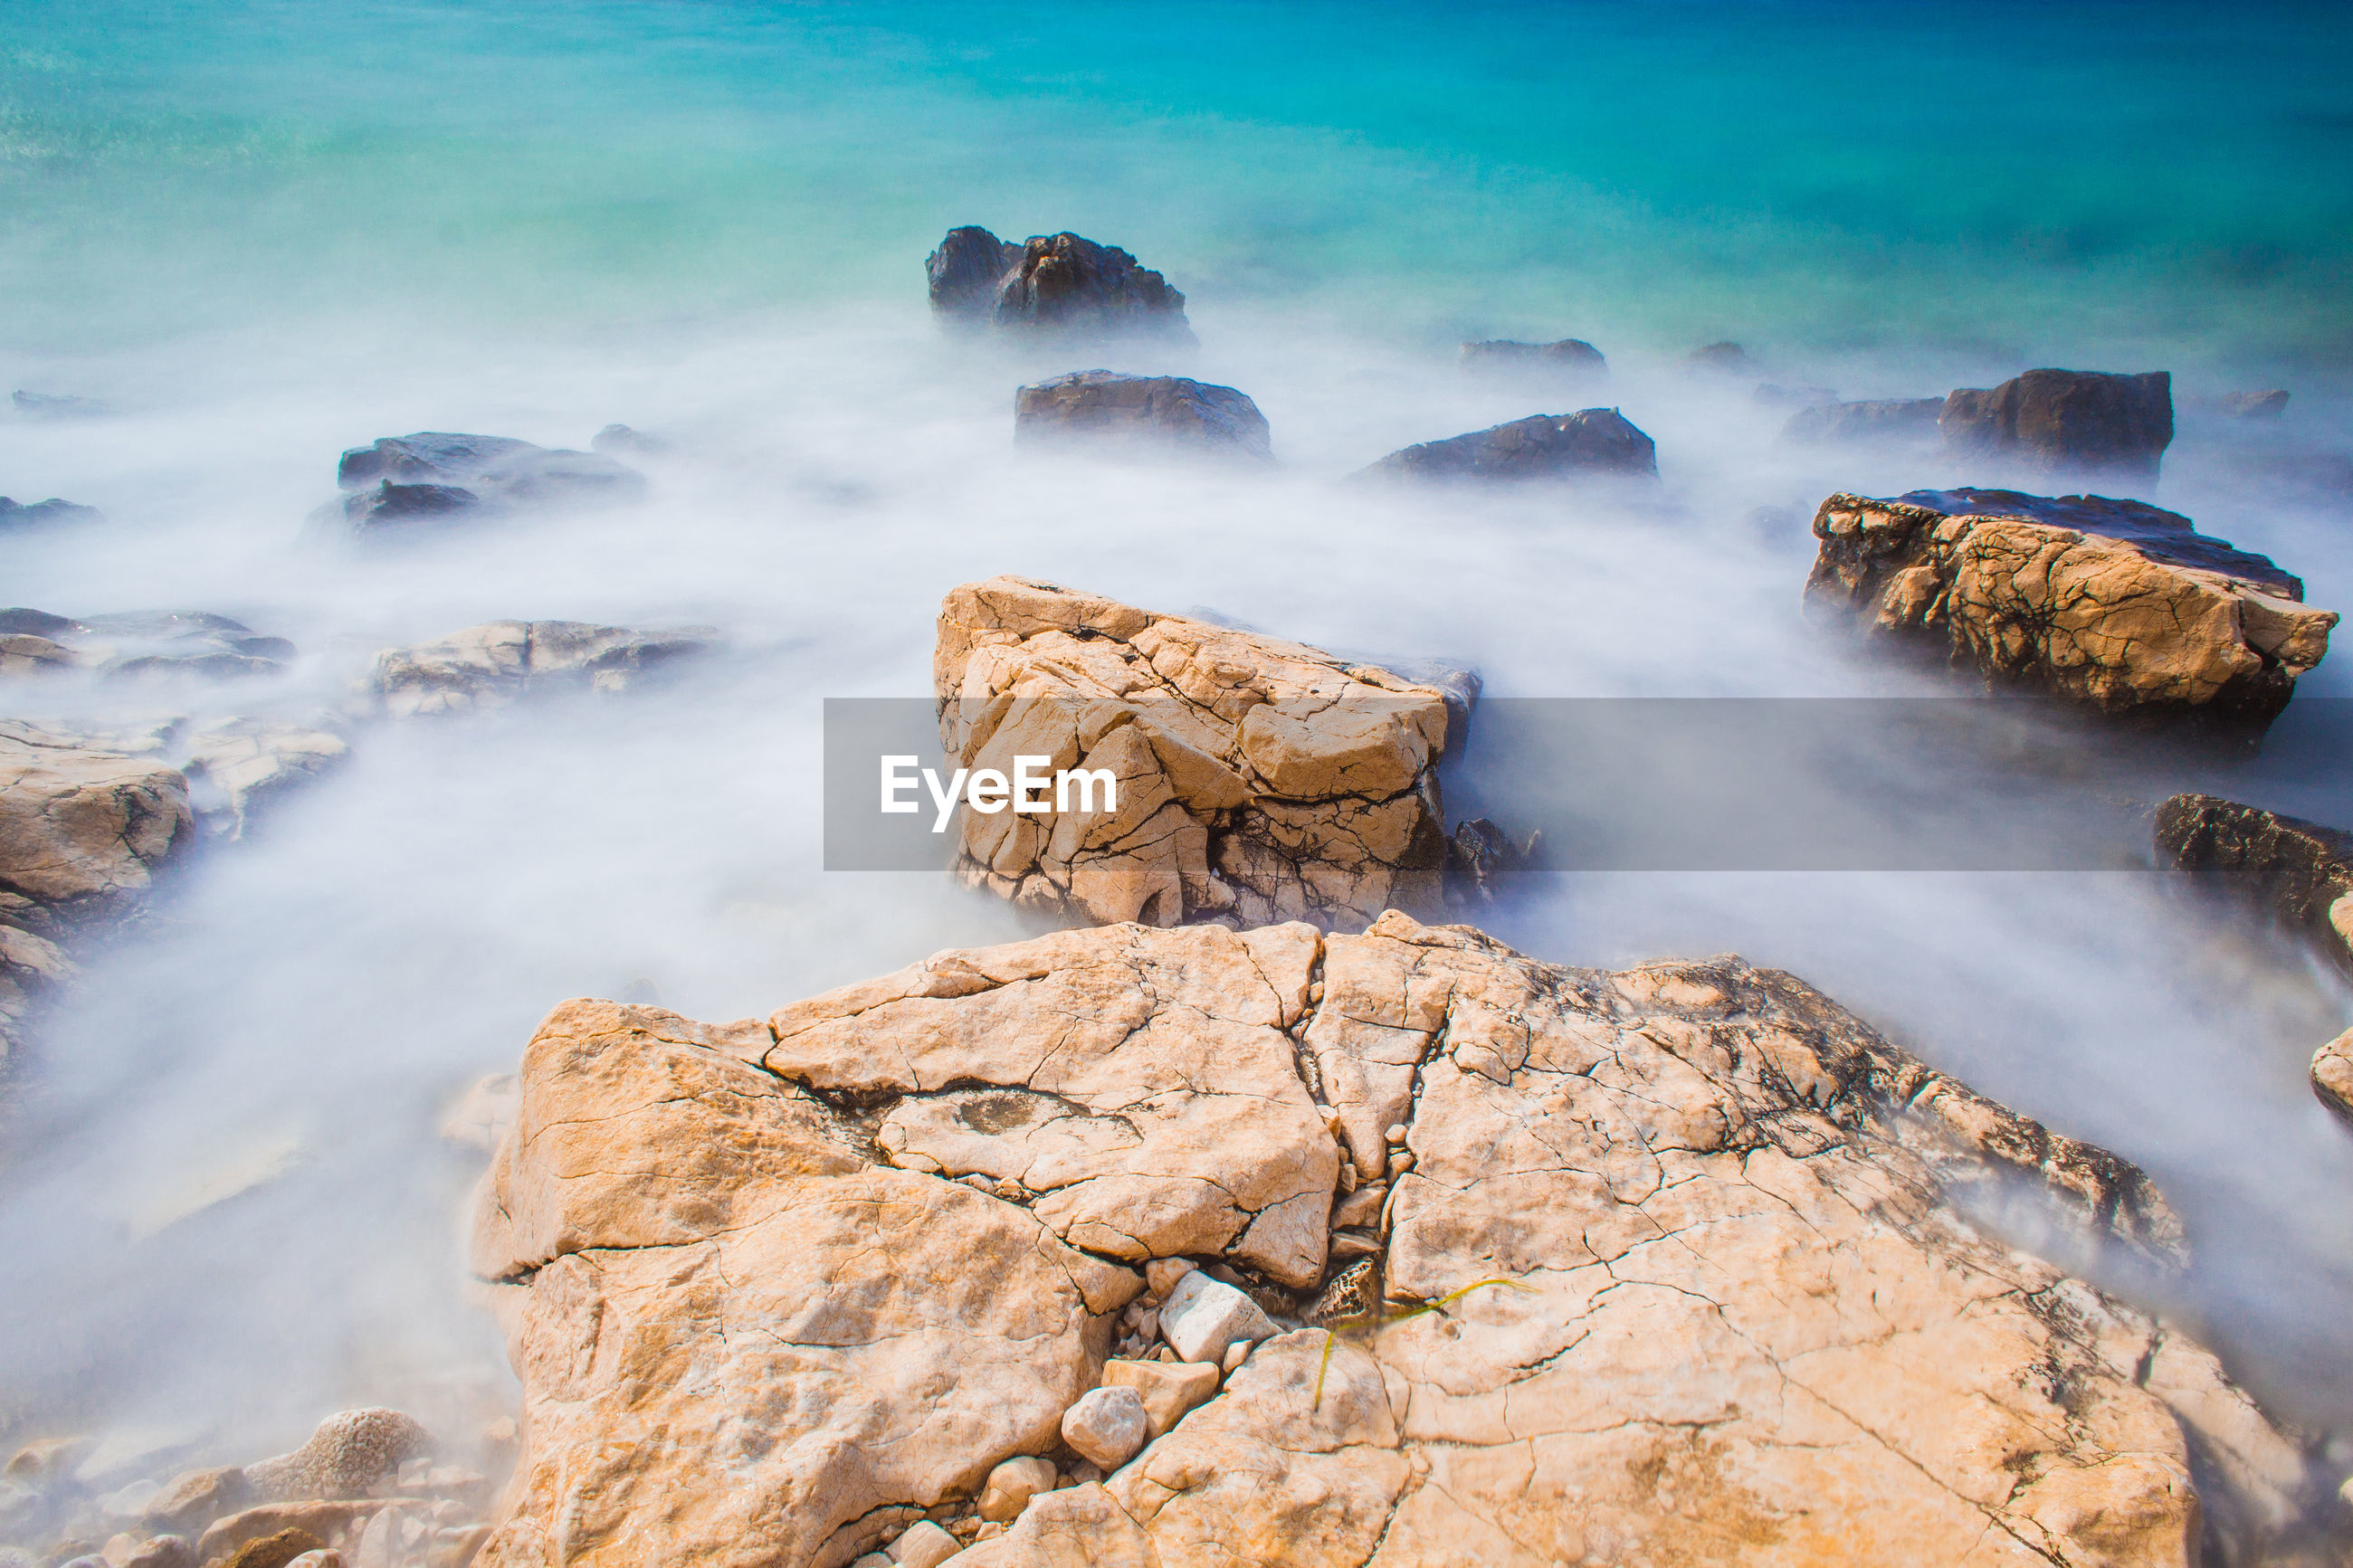 SCENIC VIEW OF ROCKS IN SEA AGAINST ROCK